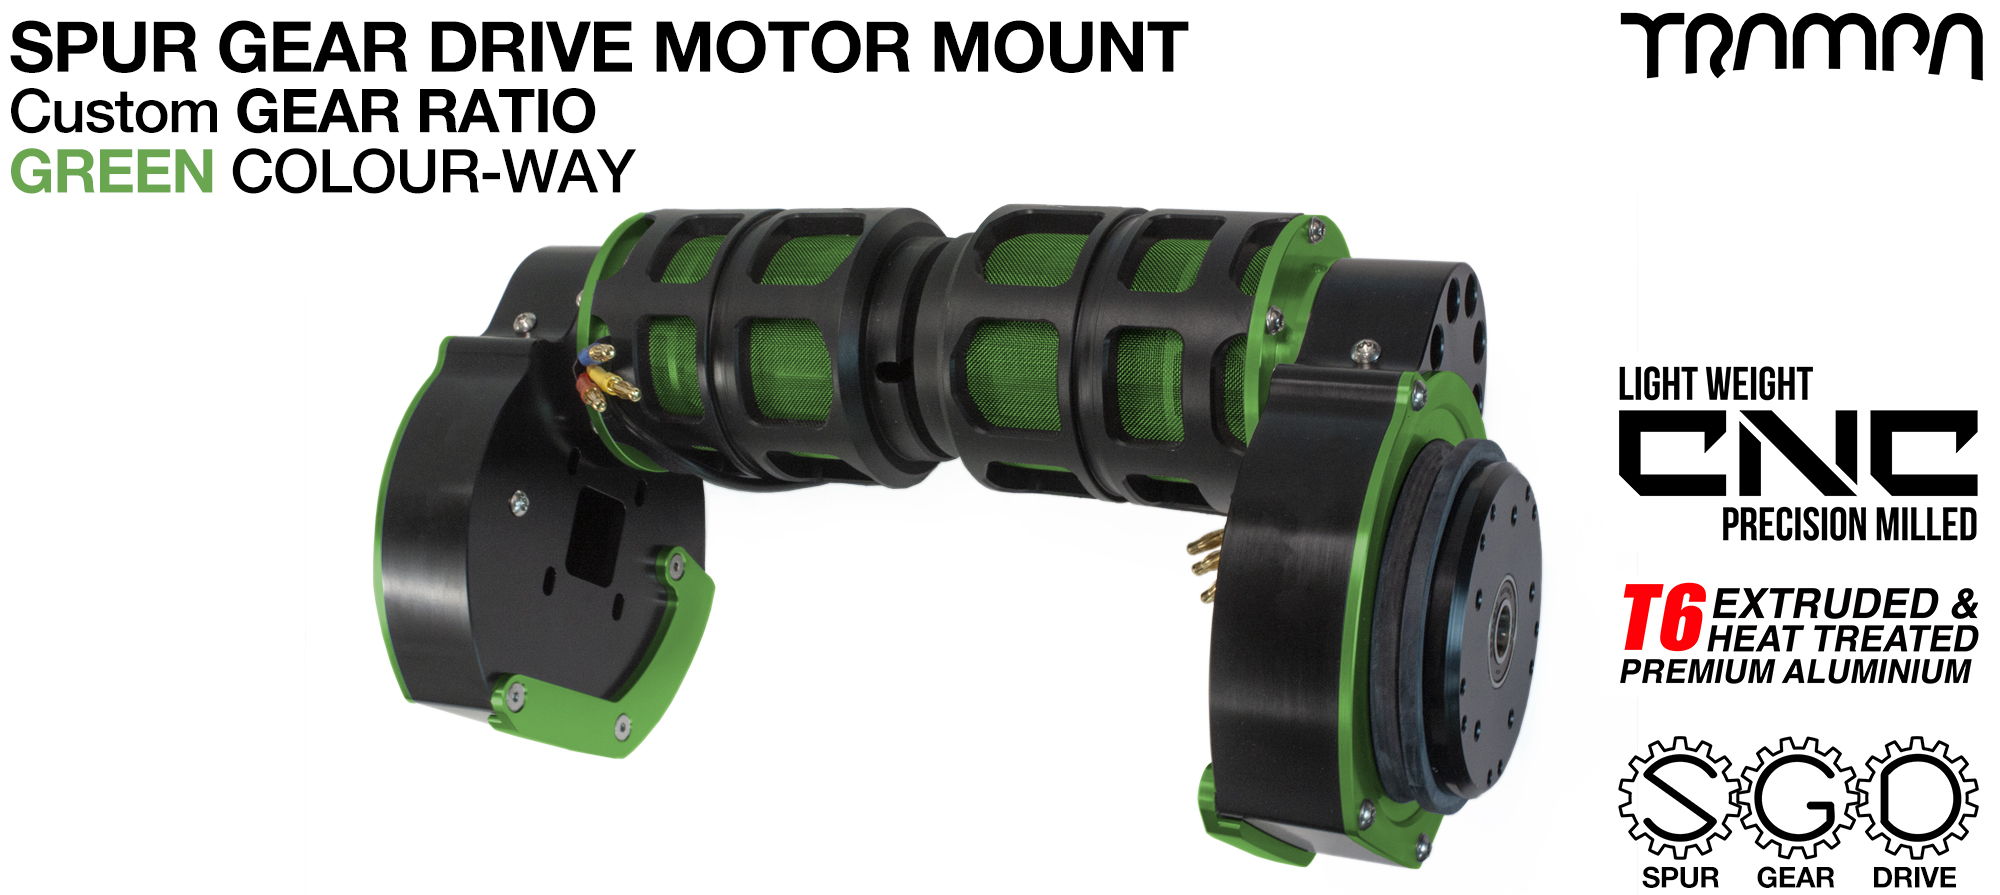 Mountainboard Spur Gear Drive TWIN Motor Mount - GREEN